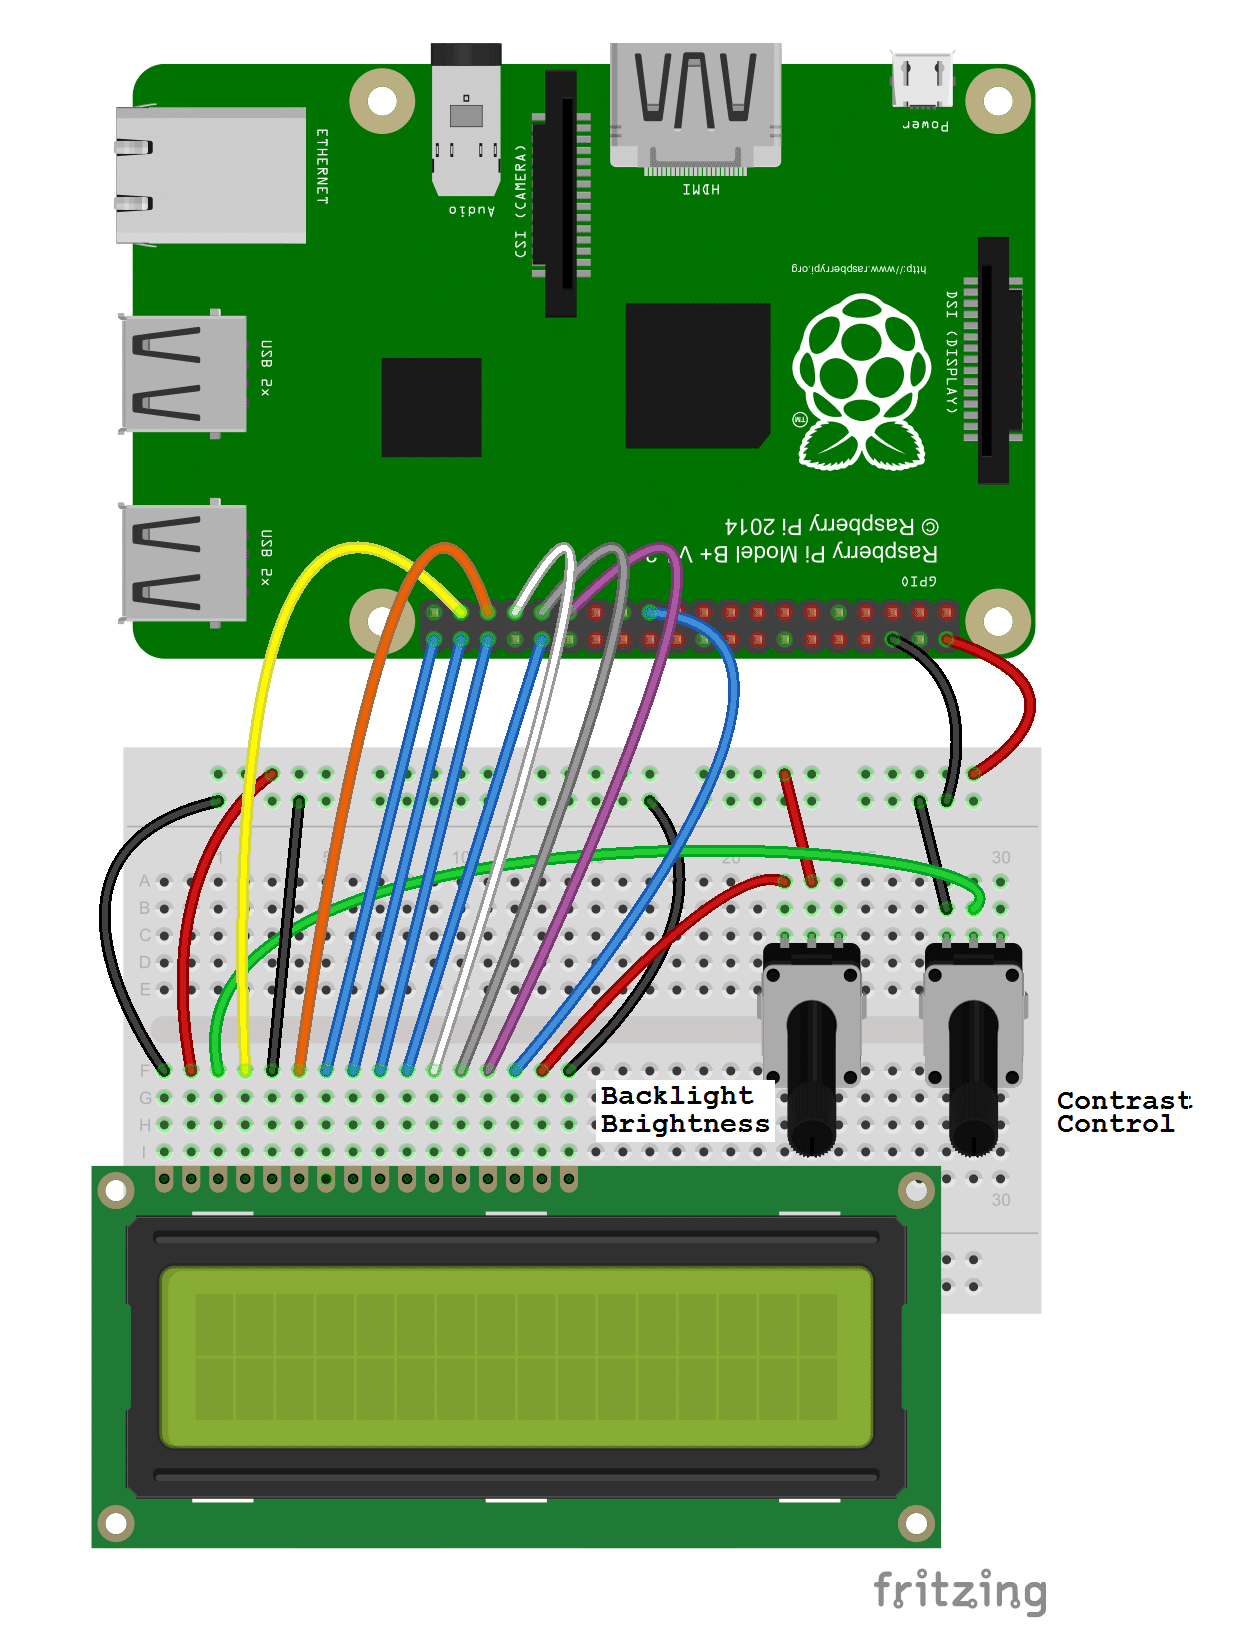 How To Setup An Lcd On The Raspberry Pi And Program It With C Wiringpi Bcm2835 Connecting In 8 Bit Mode Requires 10 Gpio Pins